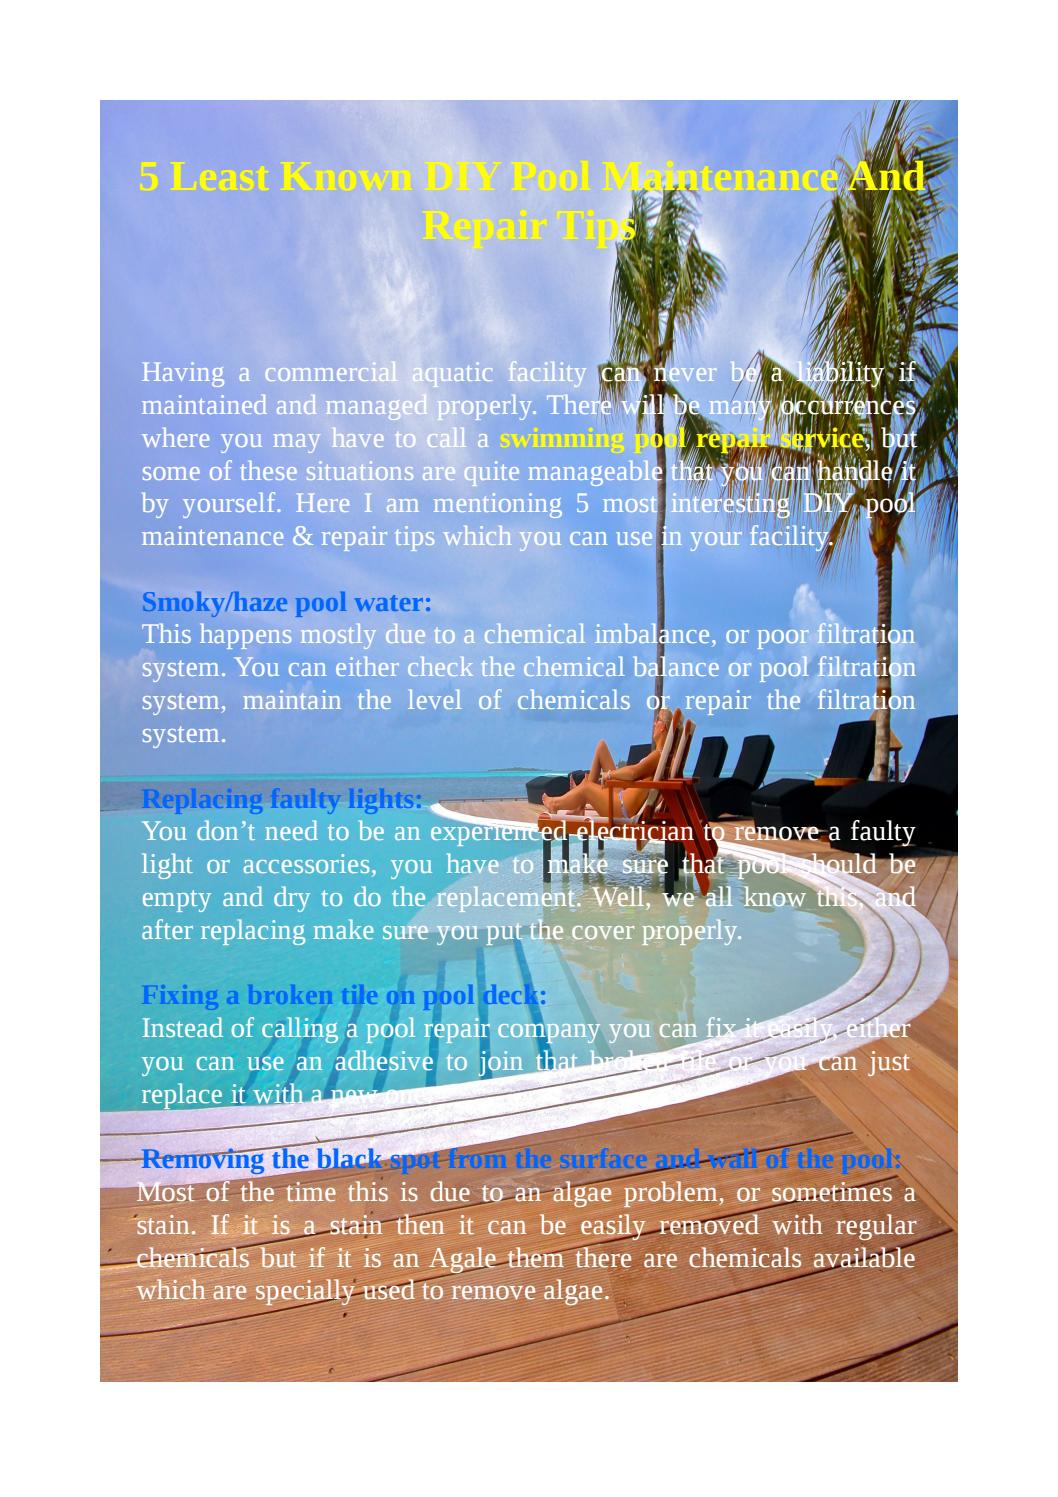 5 least known diy pool maintenance and repair tips by for Pool maintenance guide